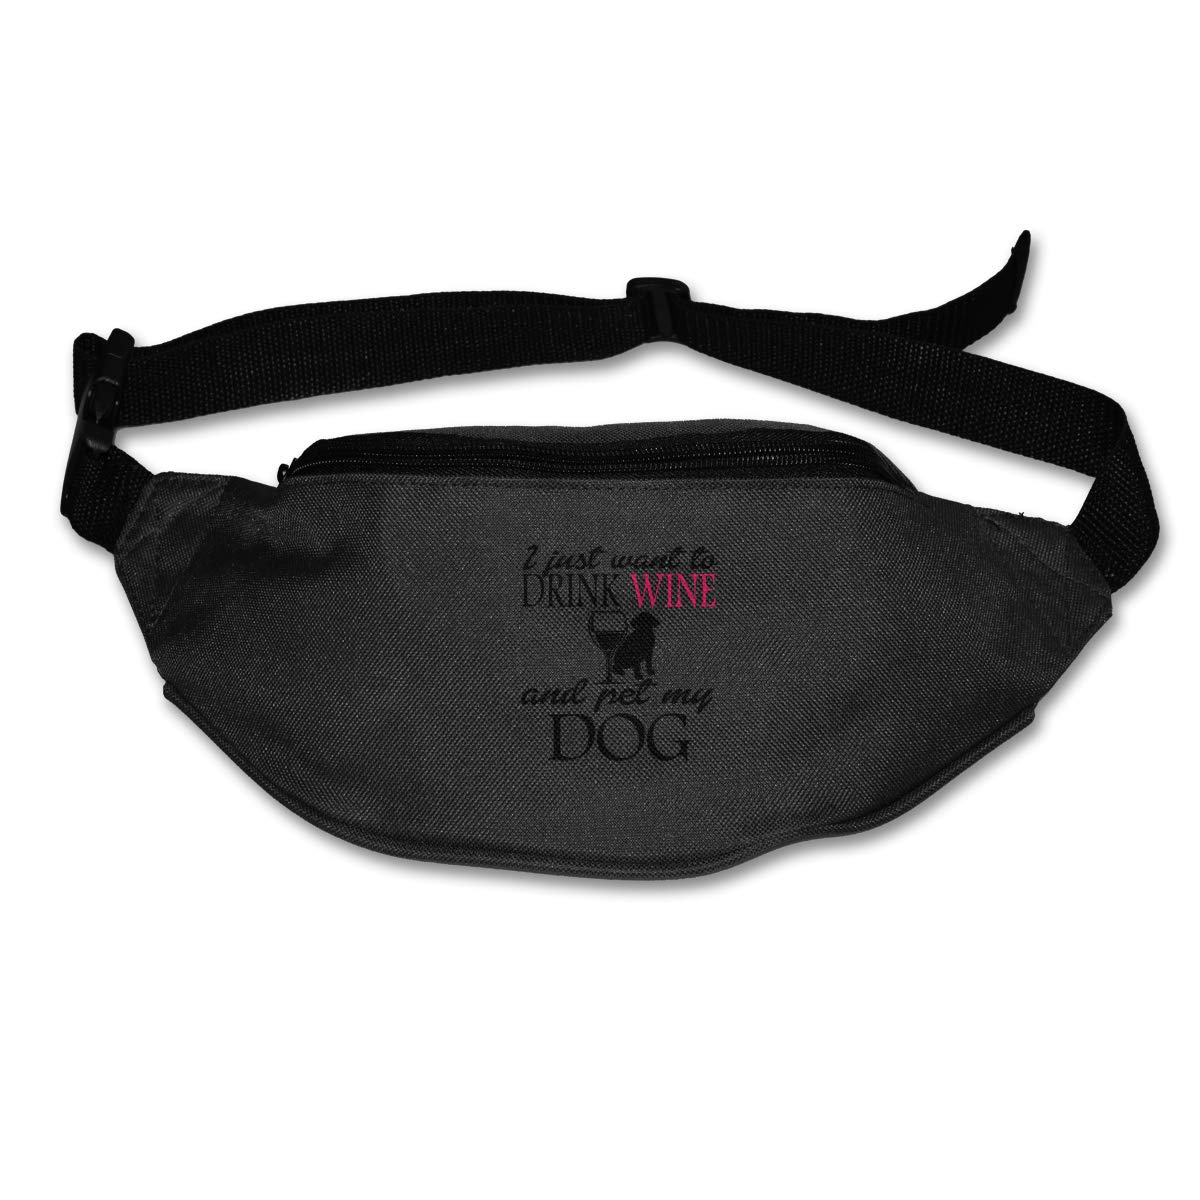 I Just Want To Drink Wine And Pet My Dog Waist Bag Fanny Pack For Hike